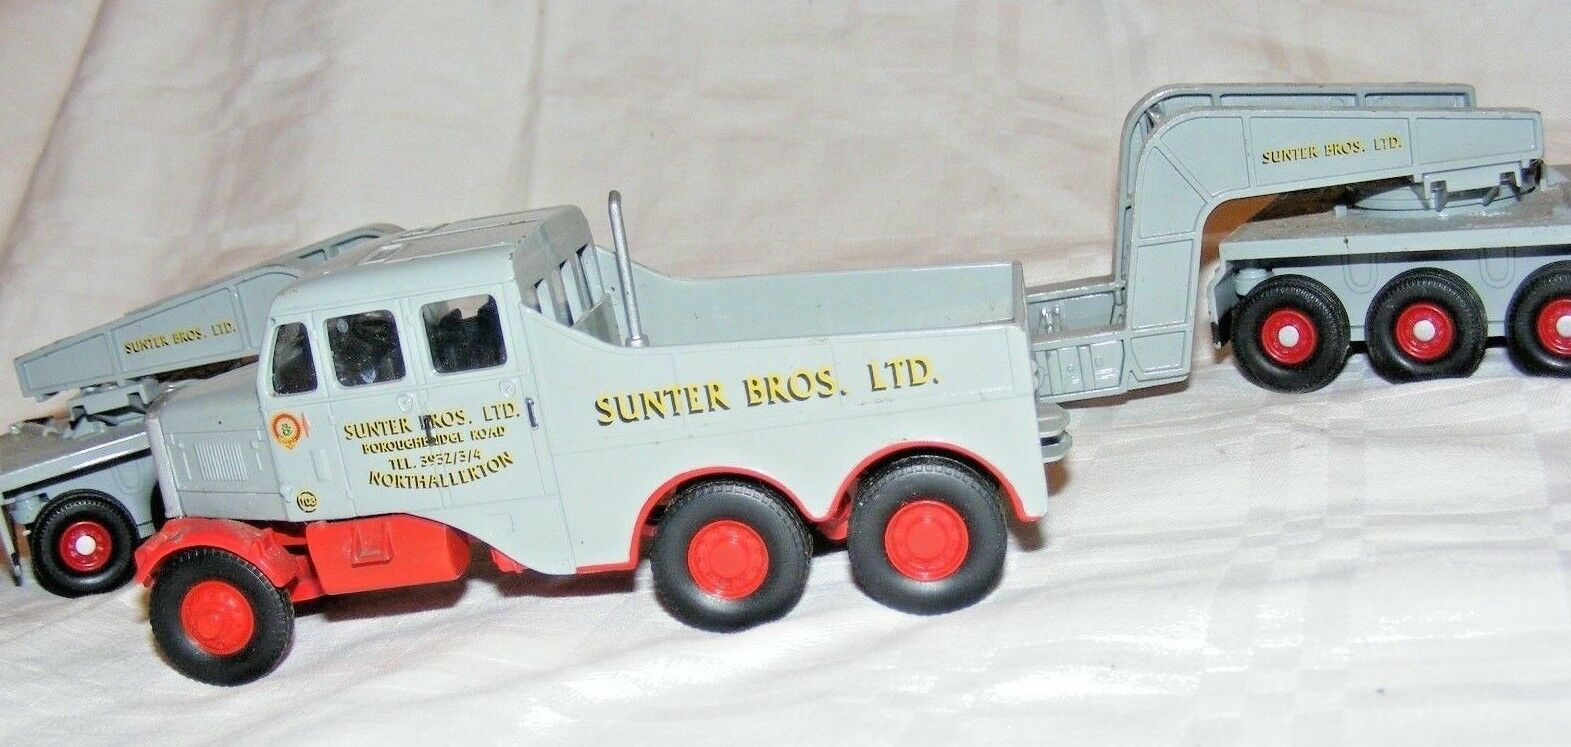 CORGI 1 50 SCALE 17602 SUNTER BROS CONSTRUCTOR 24 WHEEL TRAILER AND LOAD DIECAST